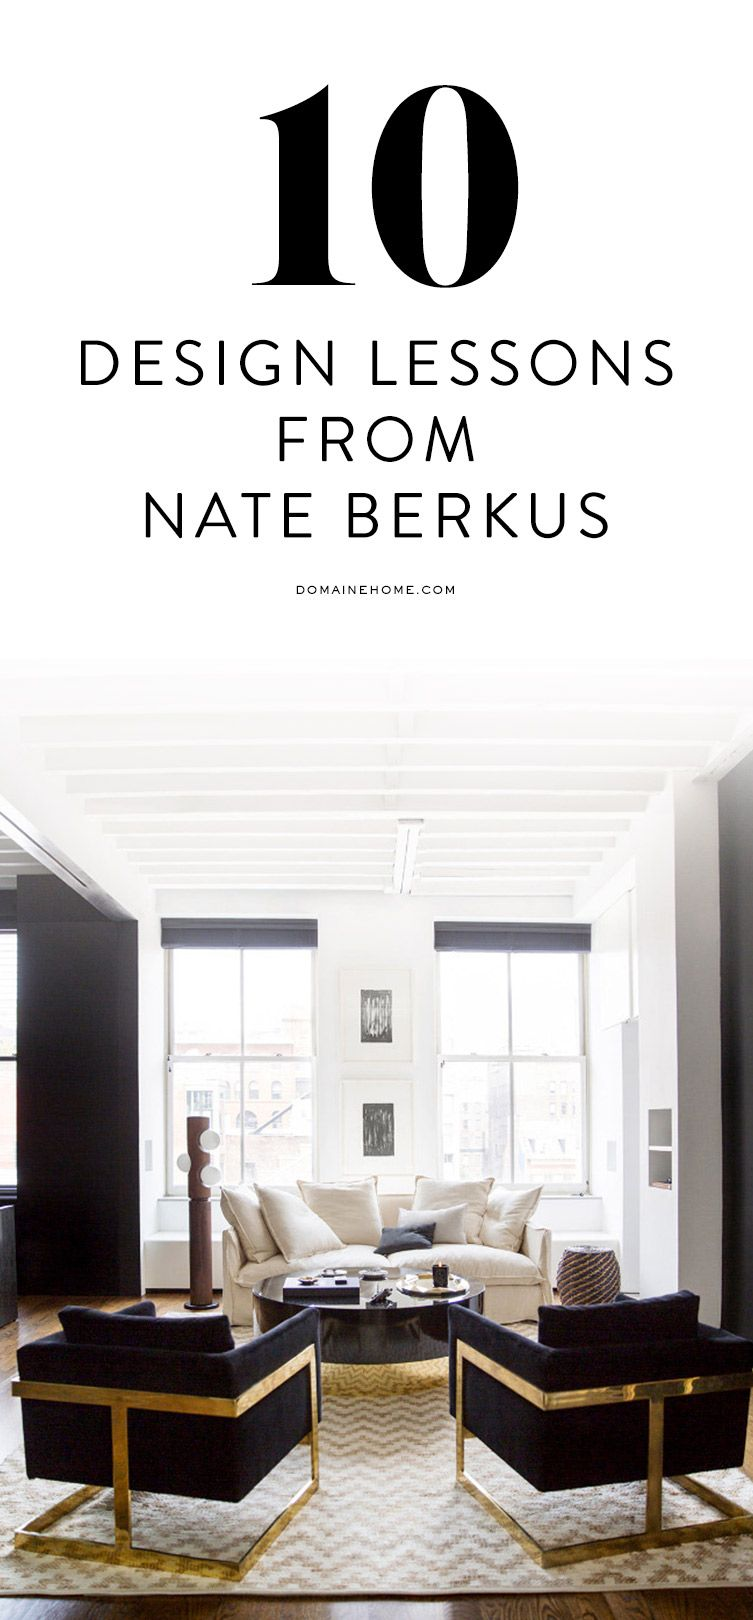 Nate Berkus Design Ideas 10 lessons we learned from nate berkus | nate berkus, learning and